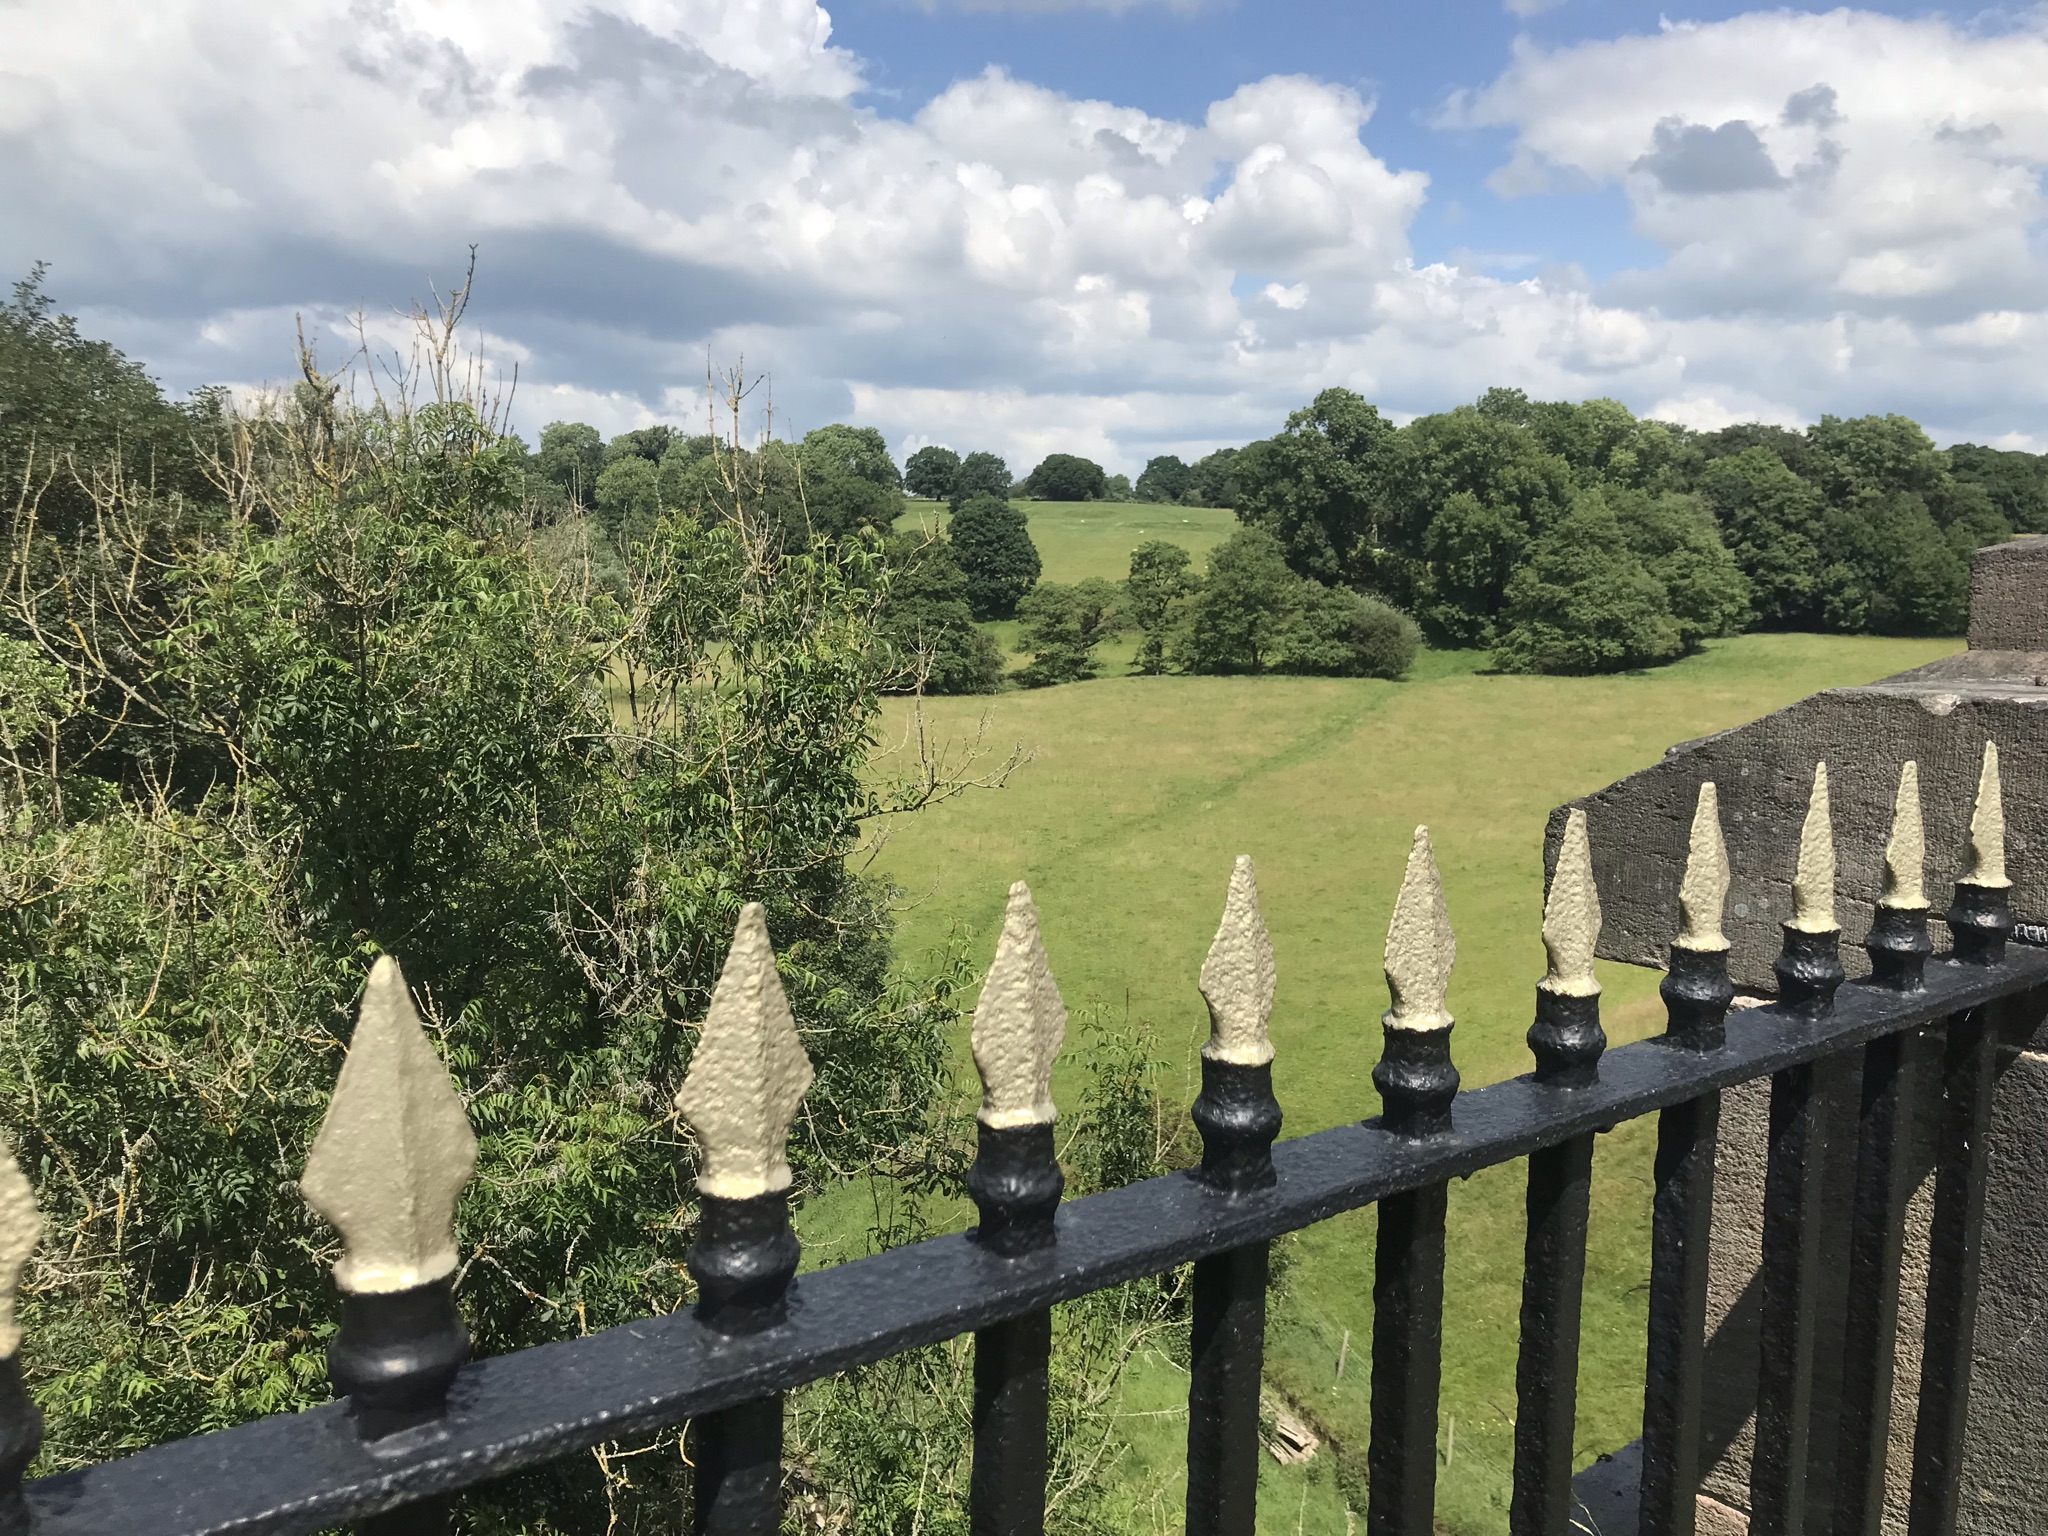 Gold and black railings overlooking a long drop to green fields and trees, with fluffy clouds in the sky